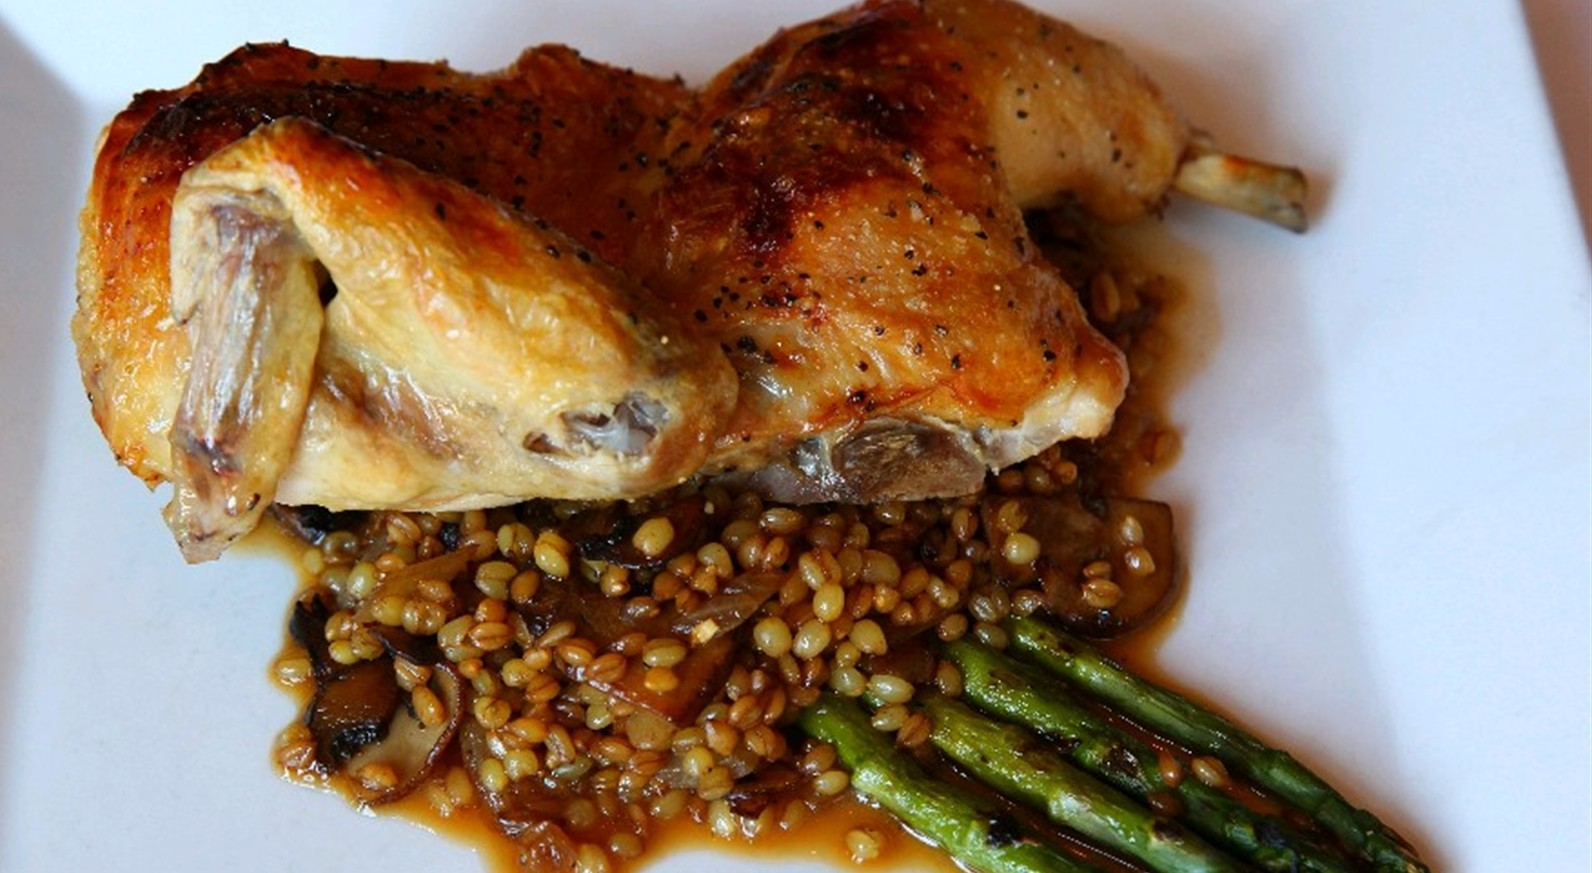 Ristorante Lombardo's roasted chicken is one of the dishes that earned the Hertel restaurant 10 plates. (Sharon Cantillon/Buffalo News file photo)